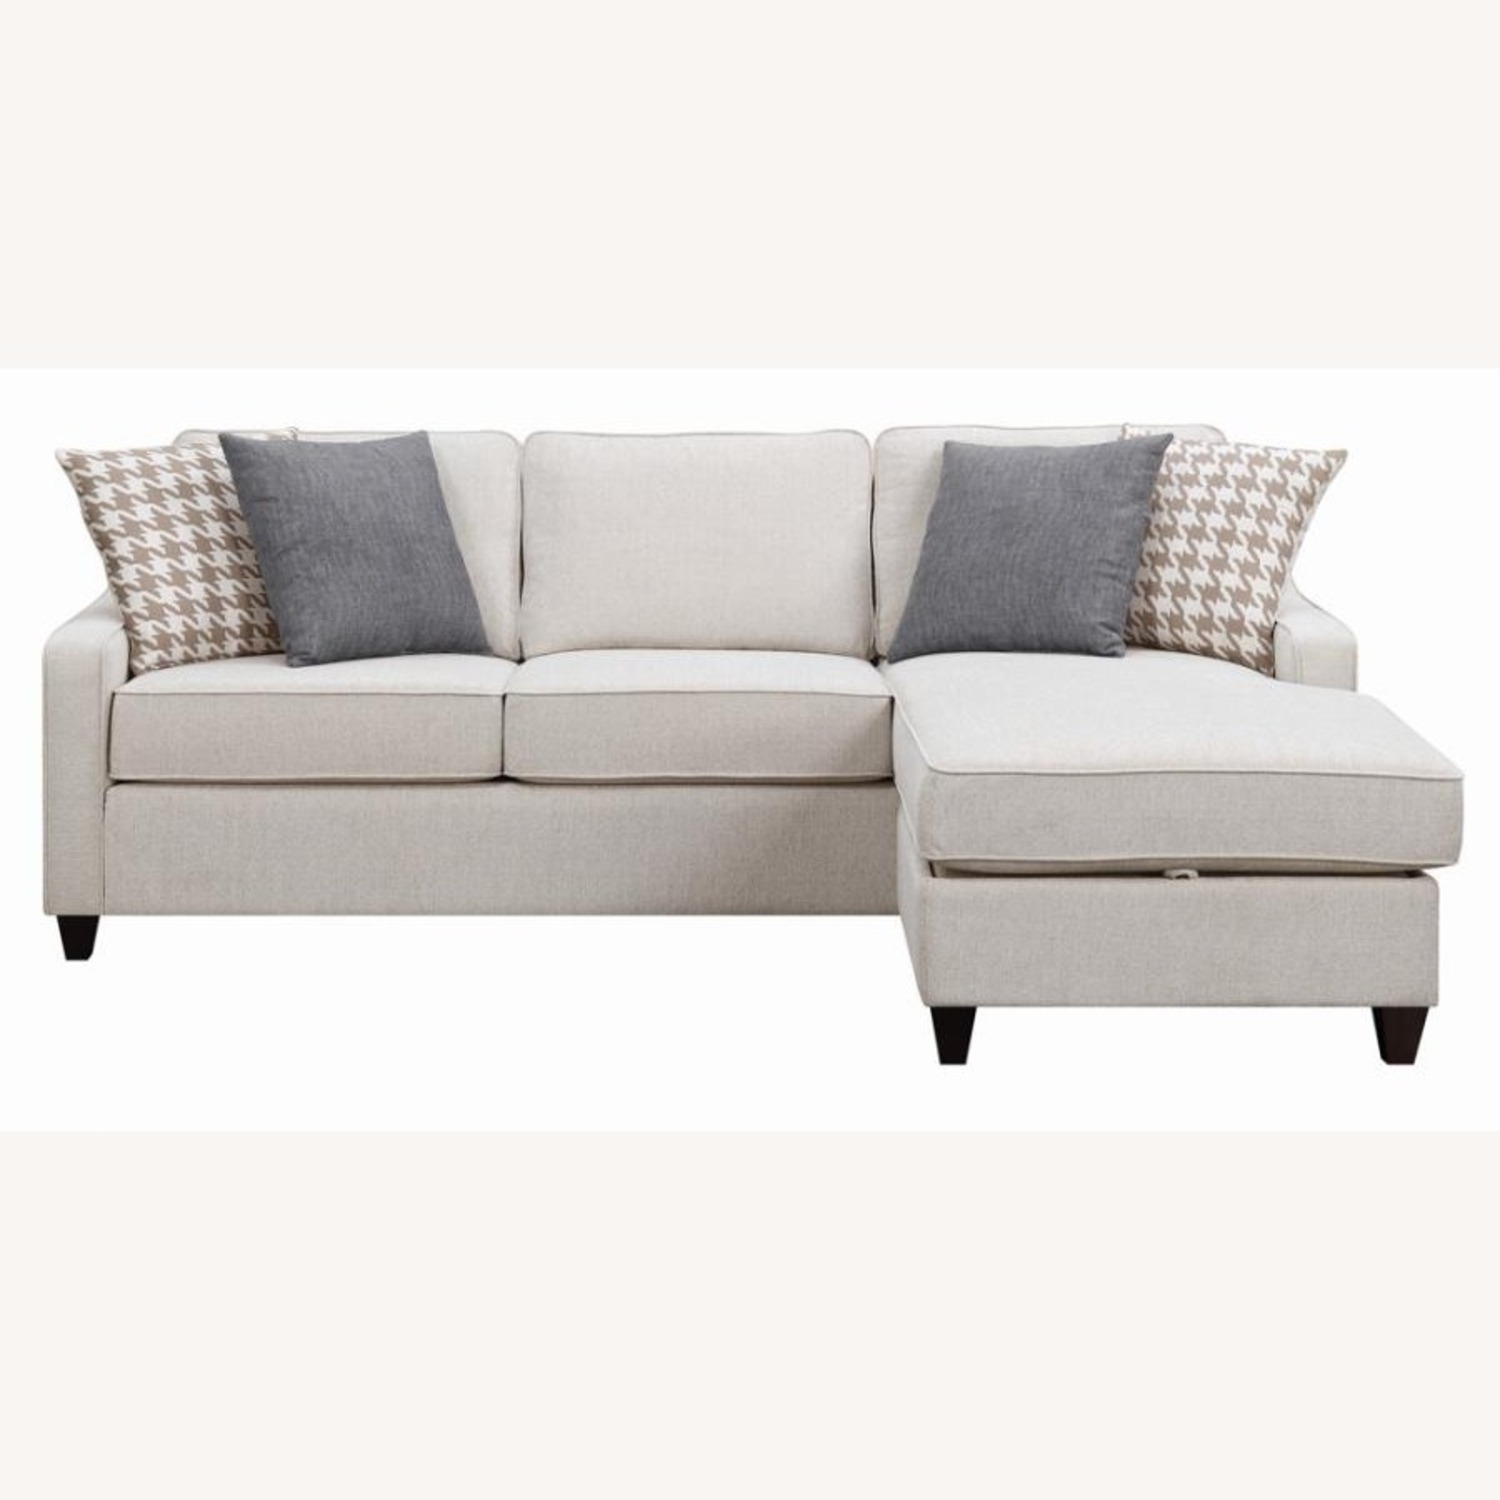 Sectional In Cream Chevron Dobby Upholstery - image-1